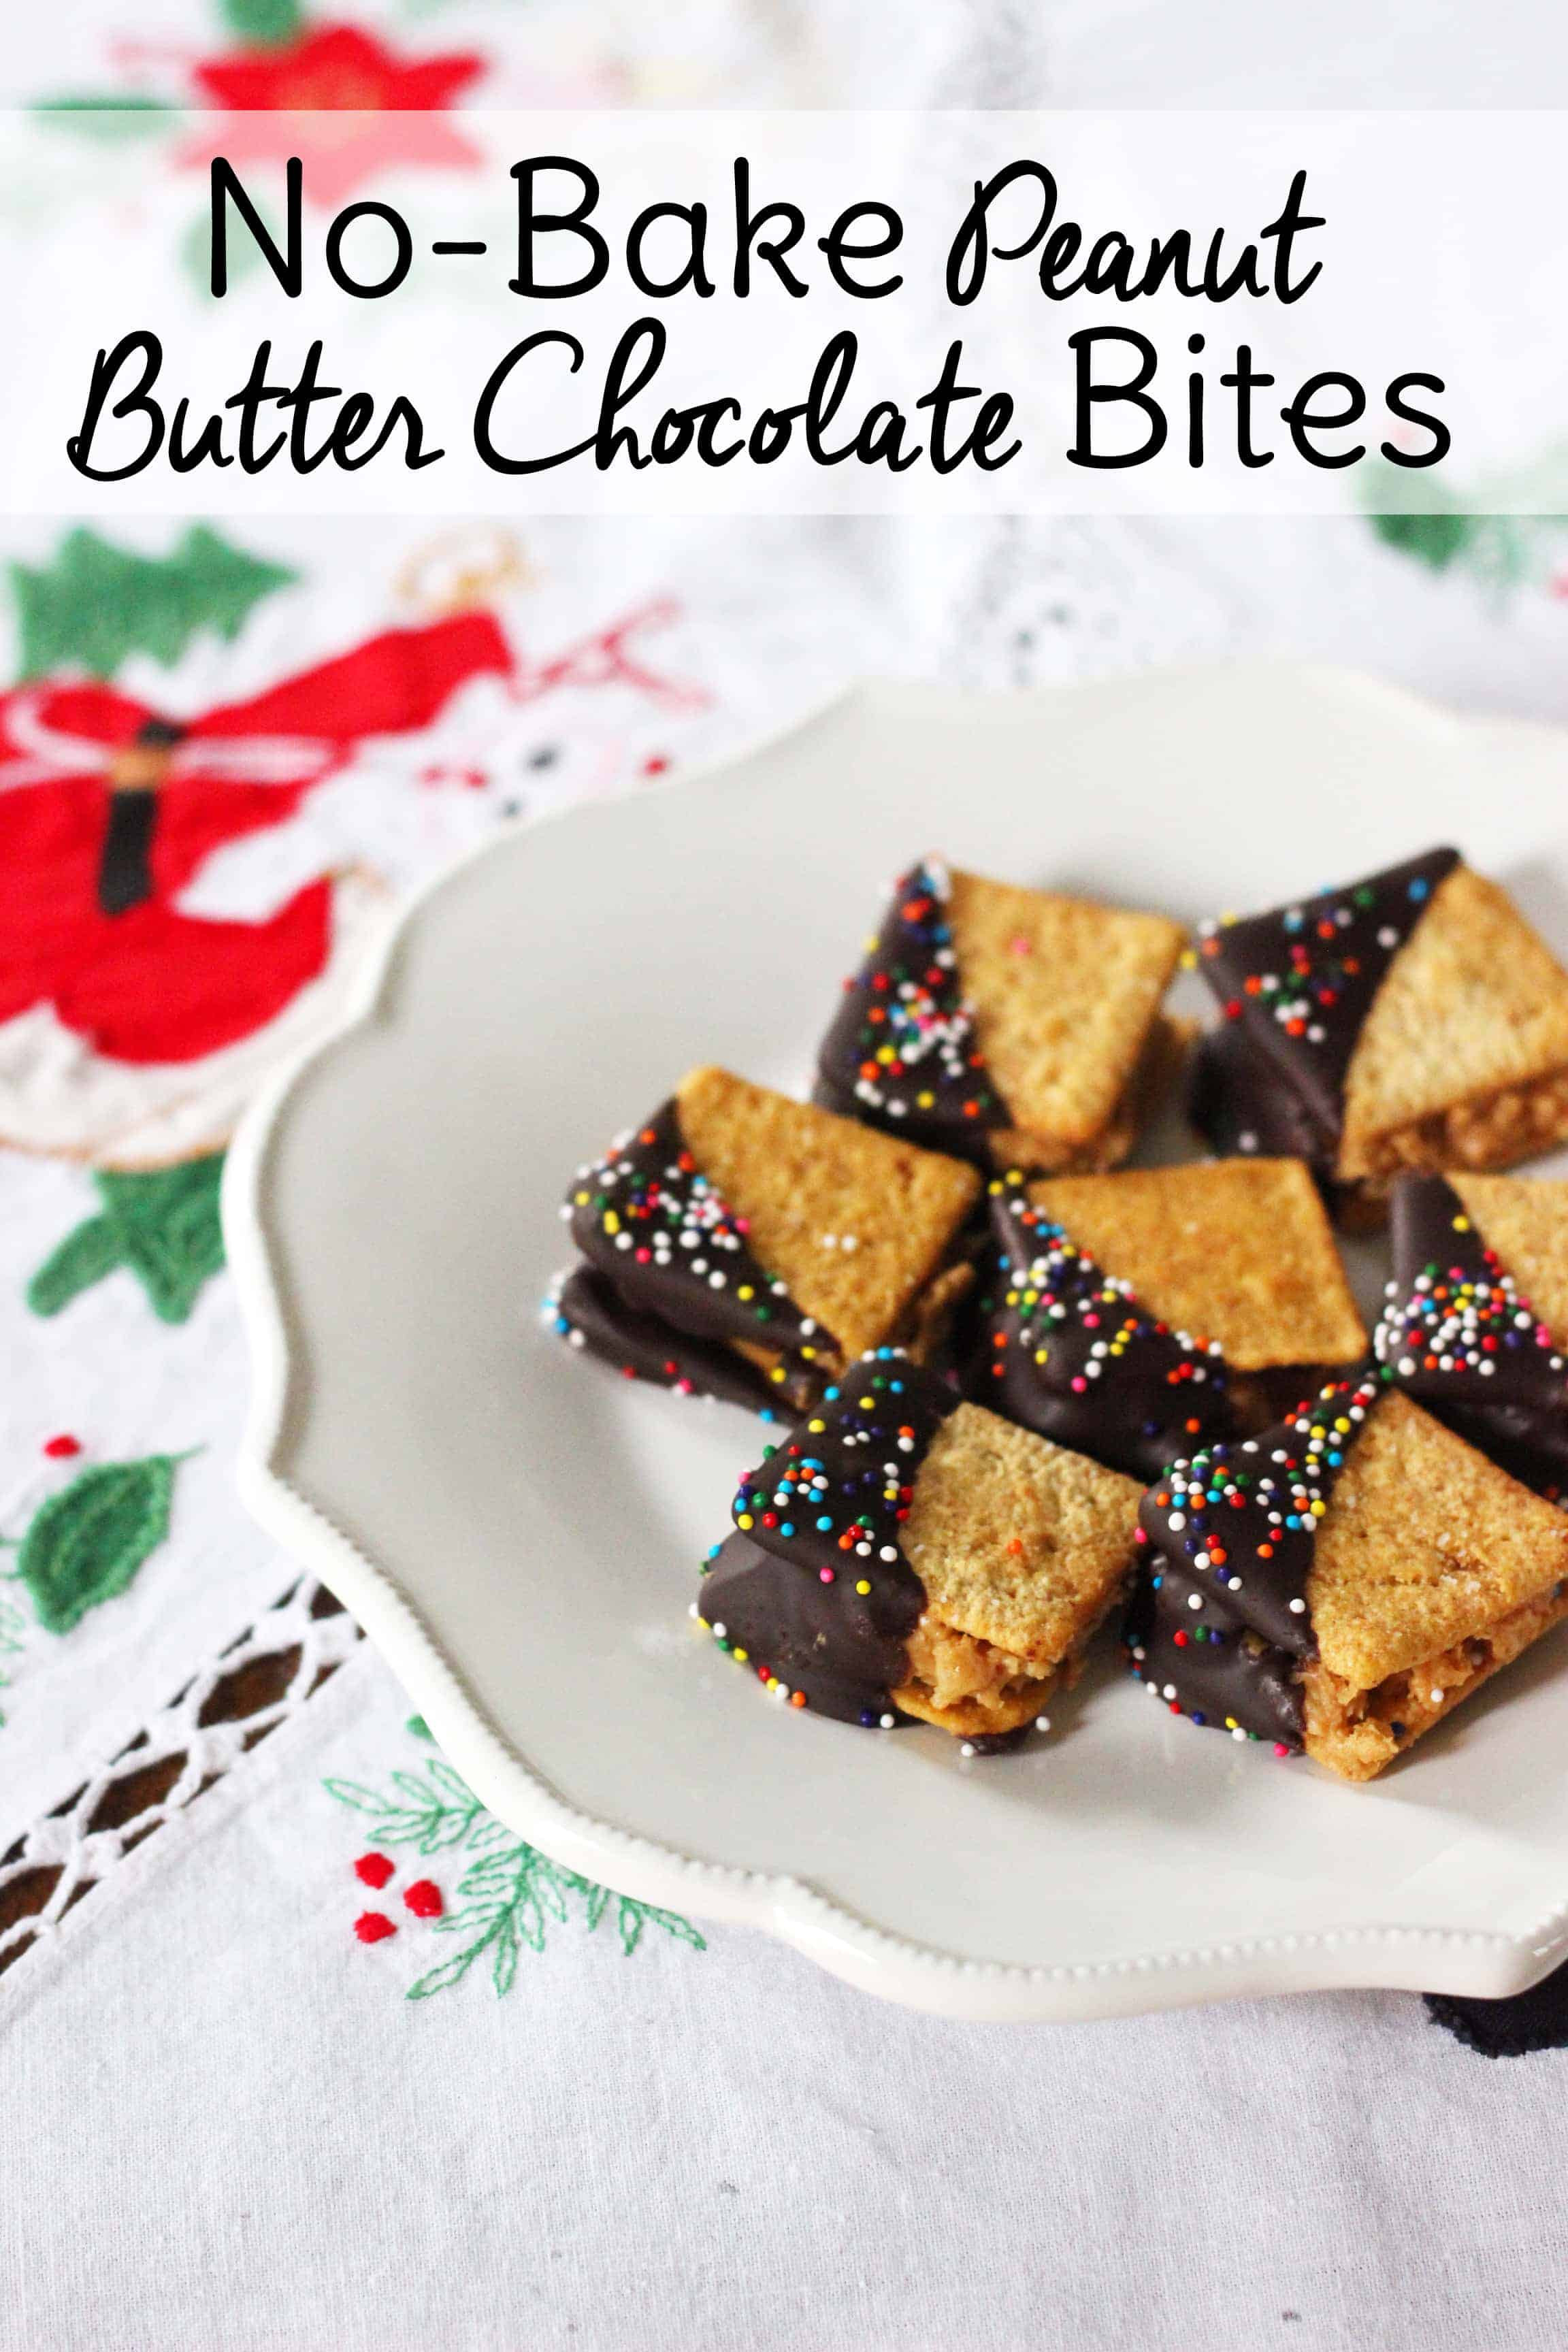 Desserts To Make For Christmas  Easy Desserts to Make for Christmas with Wheat Thins